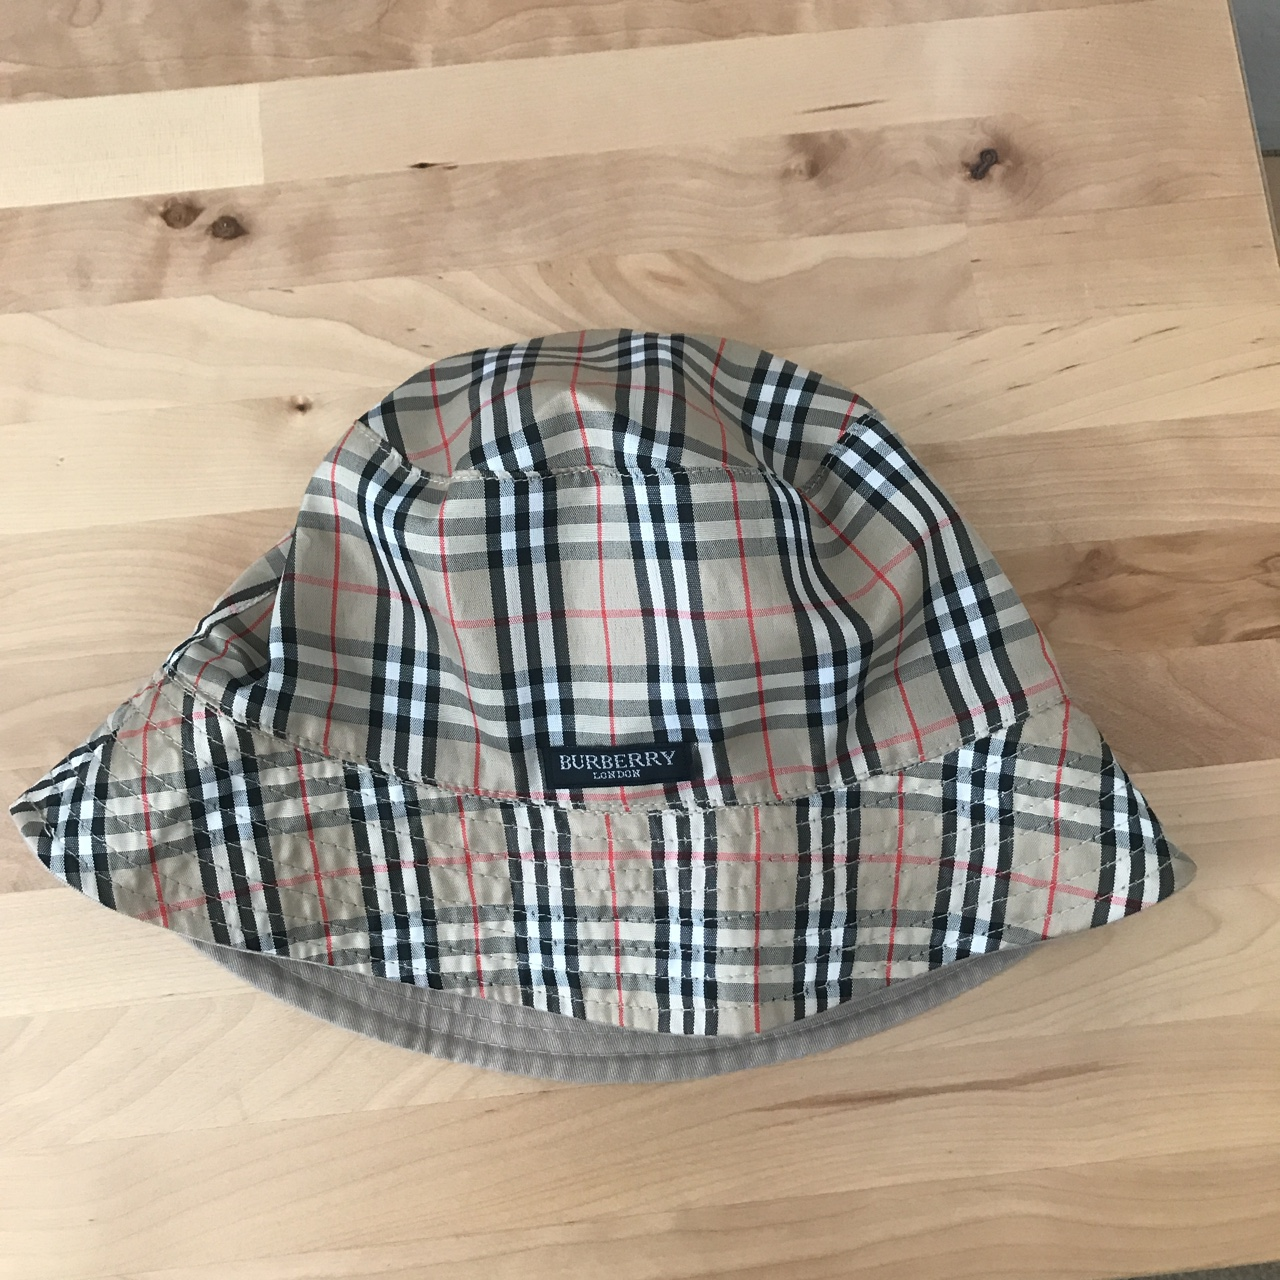 e82d63f02 Authentic vintage Burberry bucket hat in size large - Depop